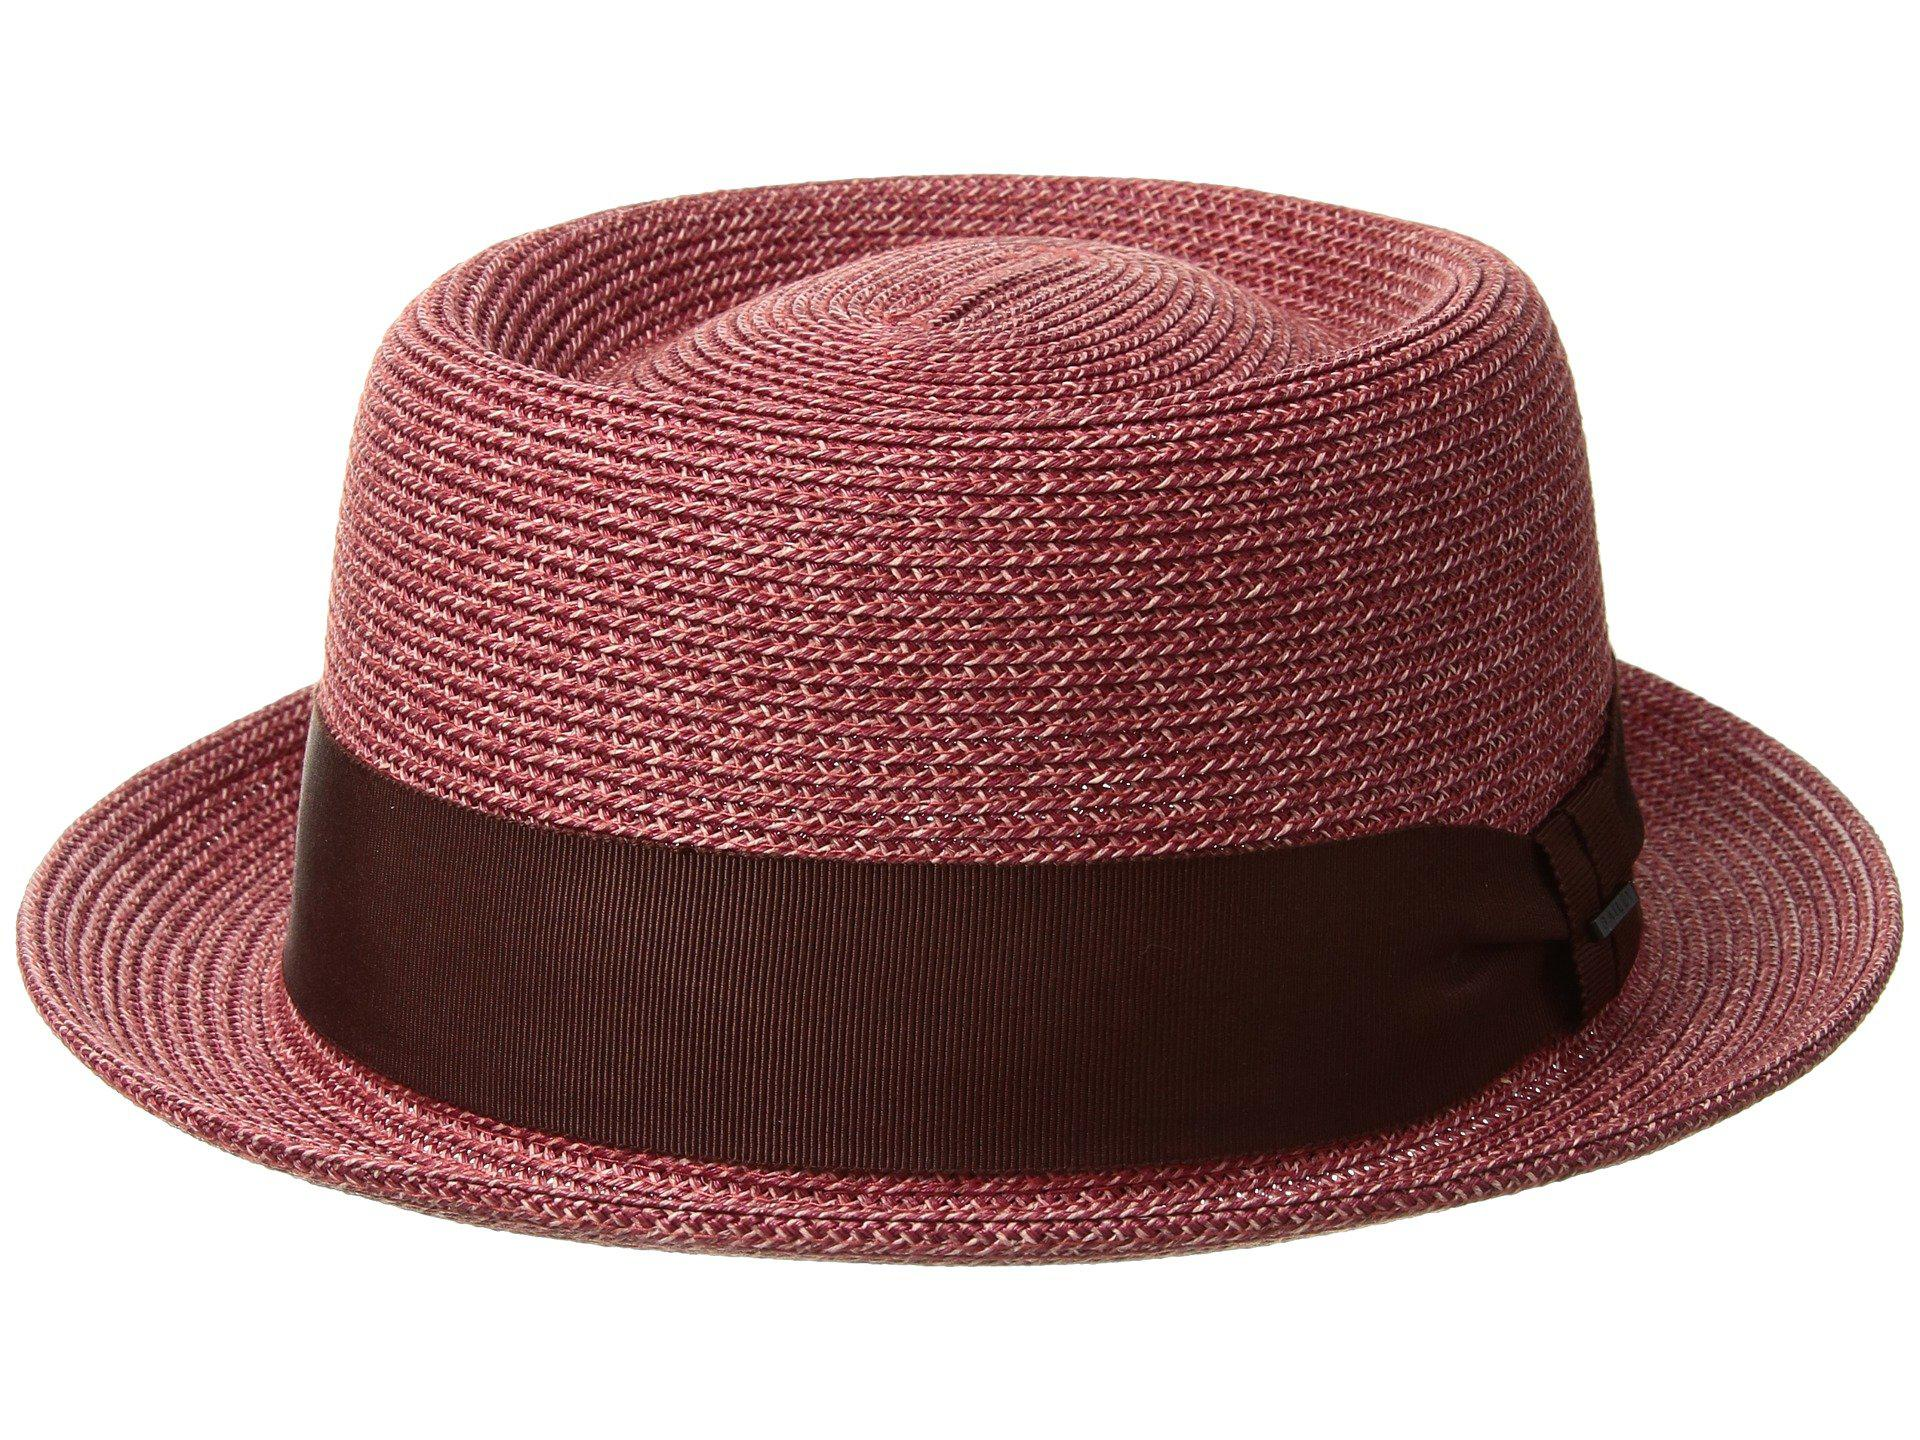 Lyst - Bailey of Hollywood Waits (chili Pepper) Caps in Red for Men 577728884b51